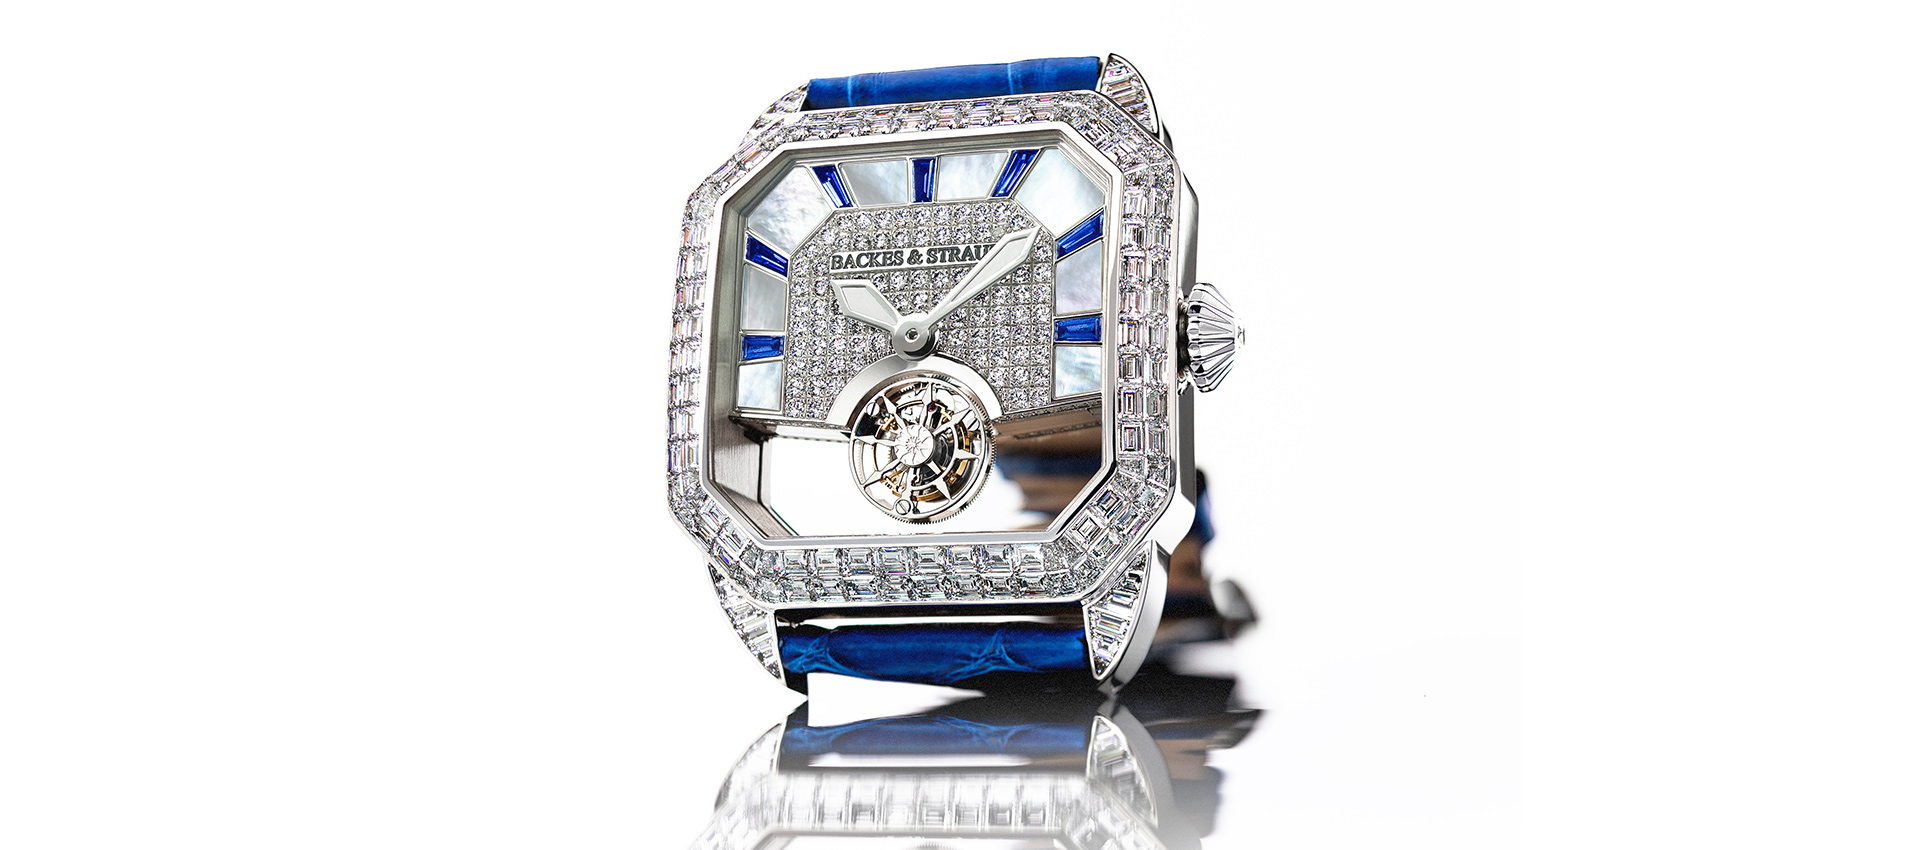 Berkeley 43 King Tourbillon diamond bespoke watch for men